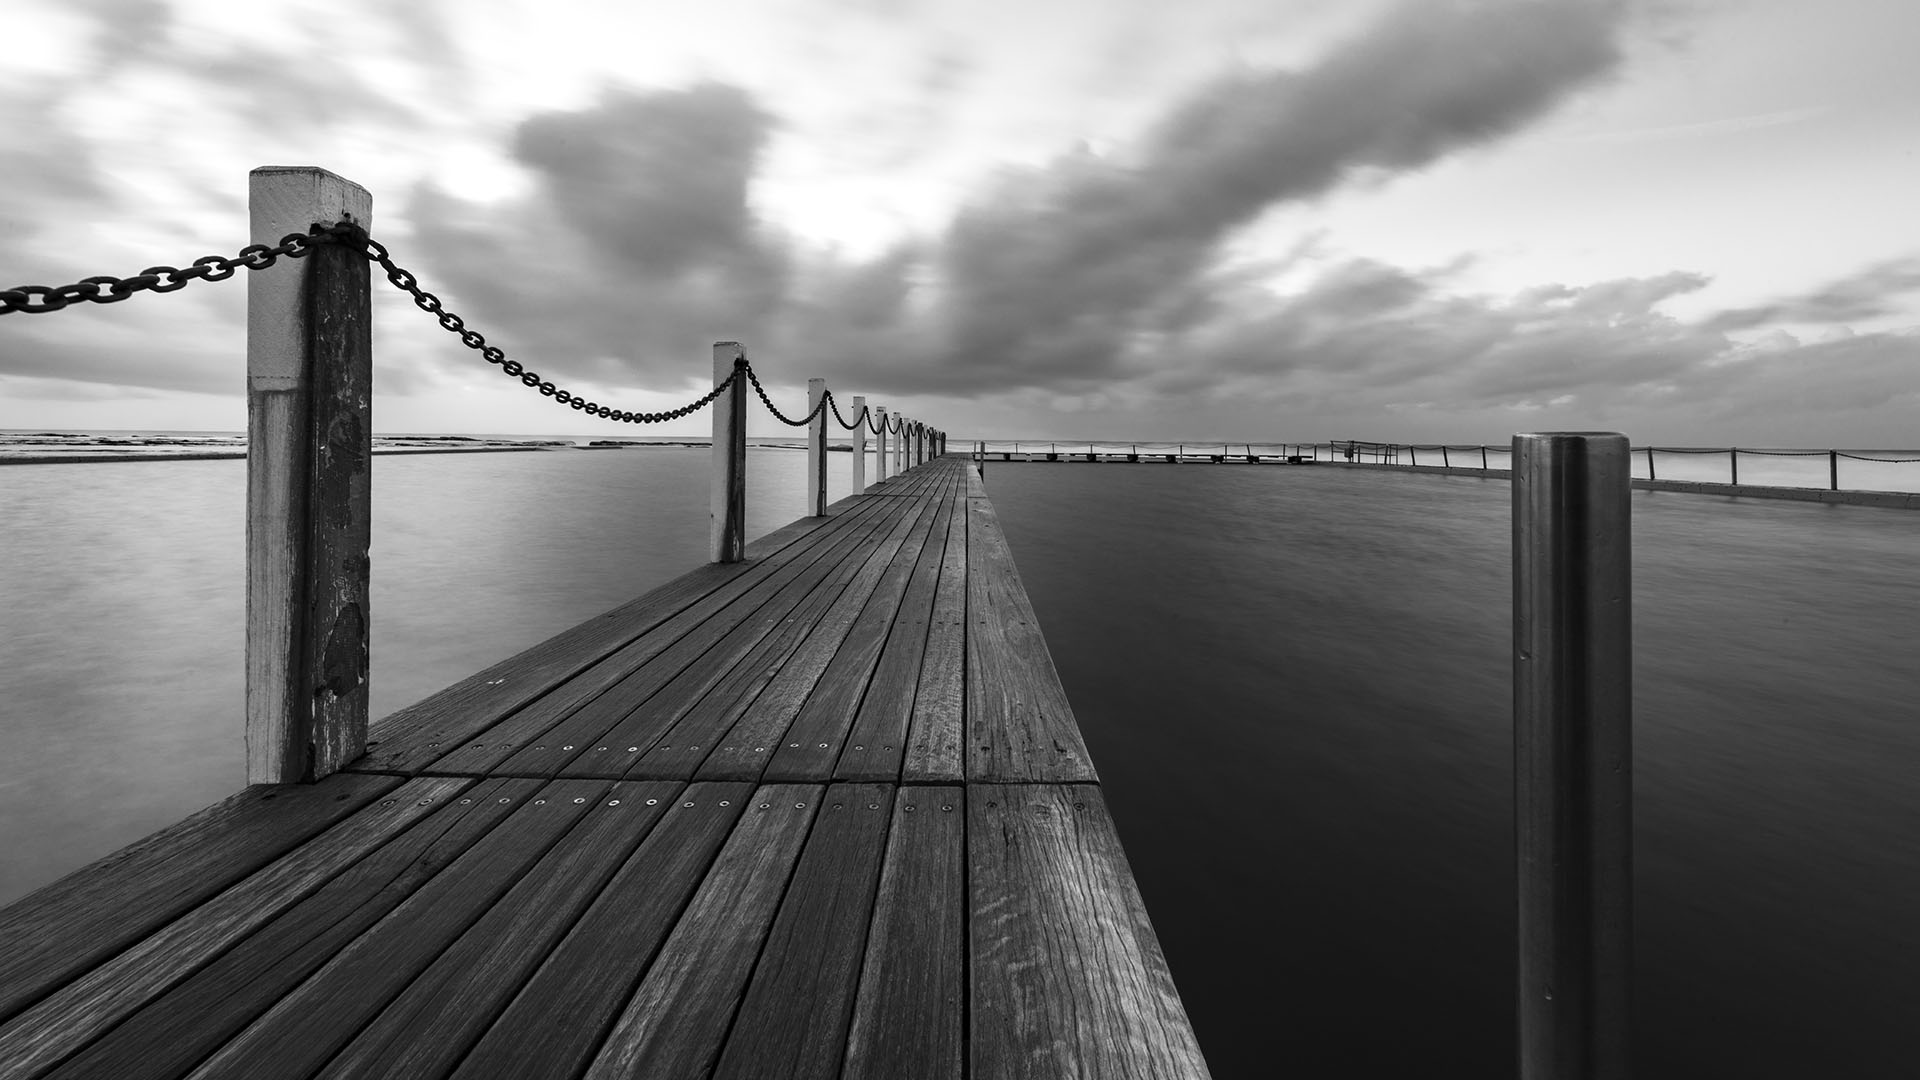 How To Take A Good Black and White Photo